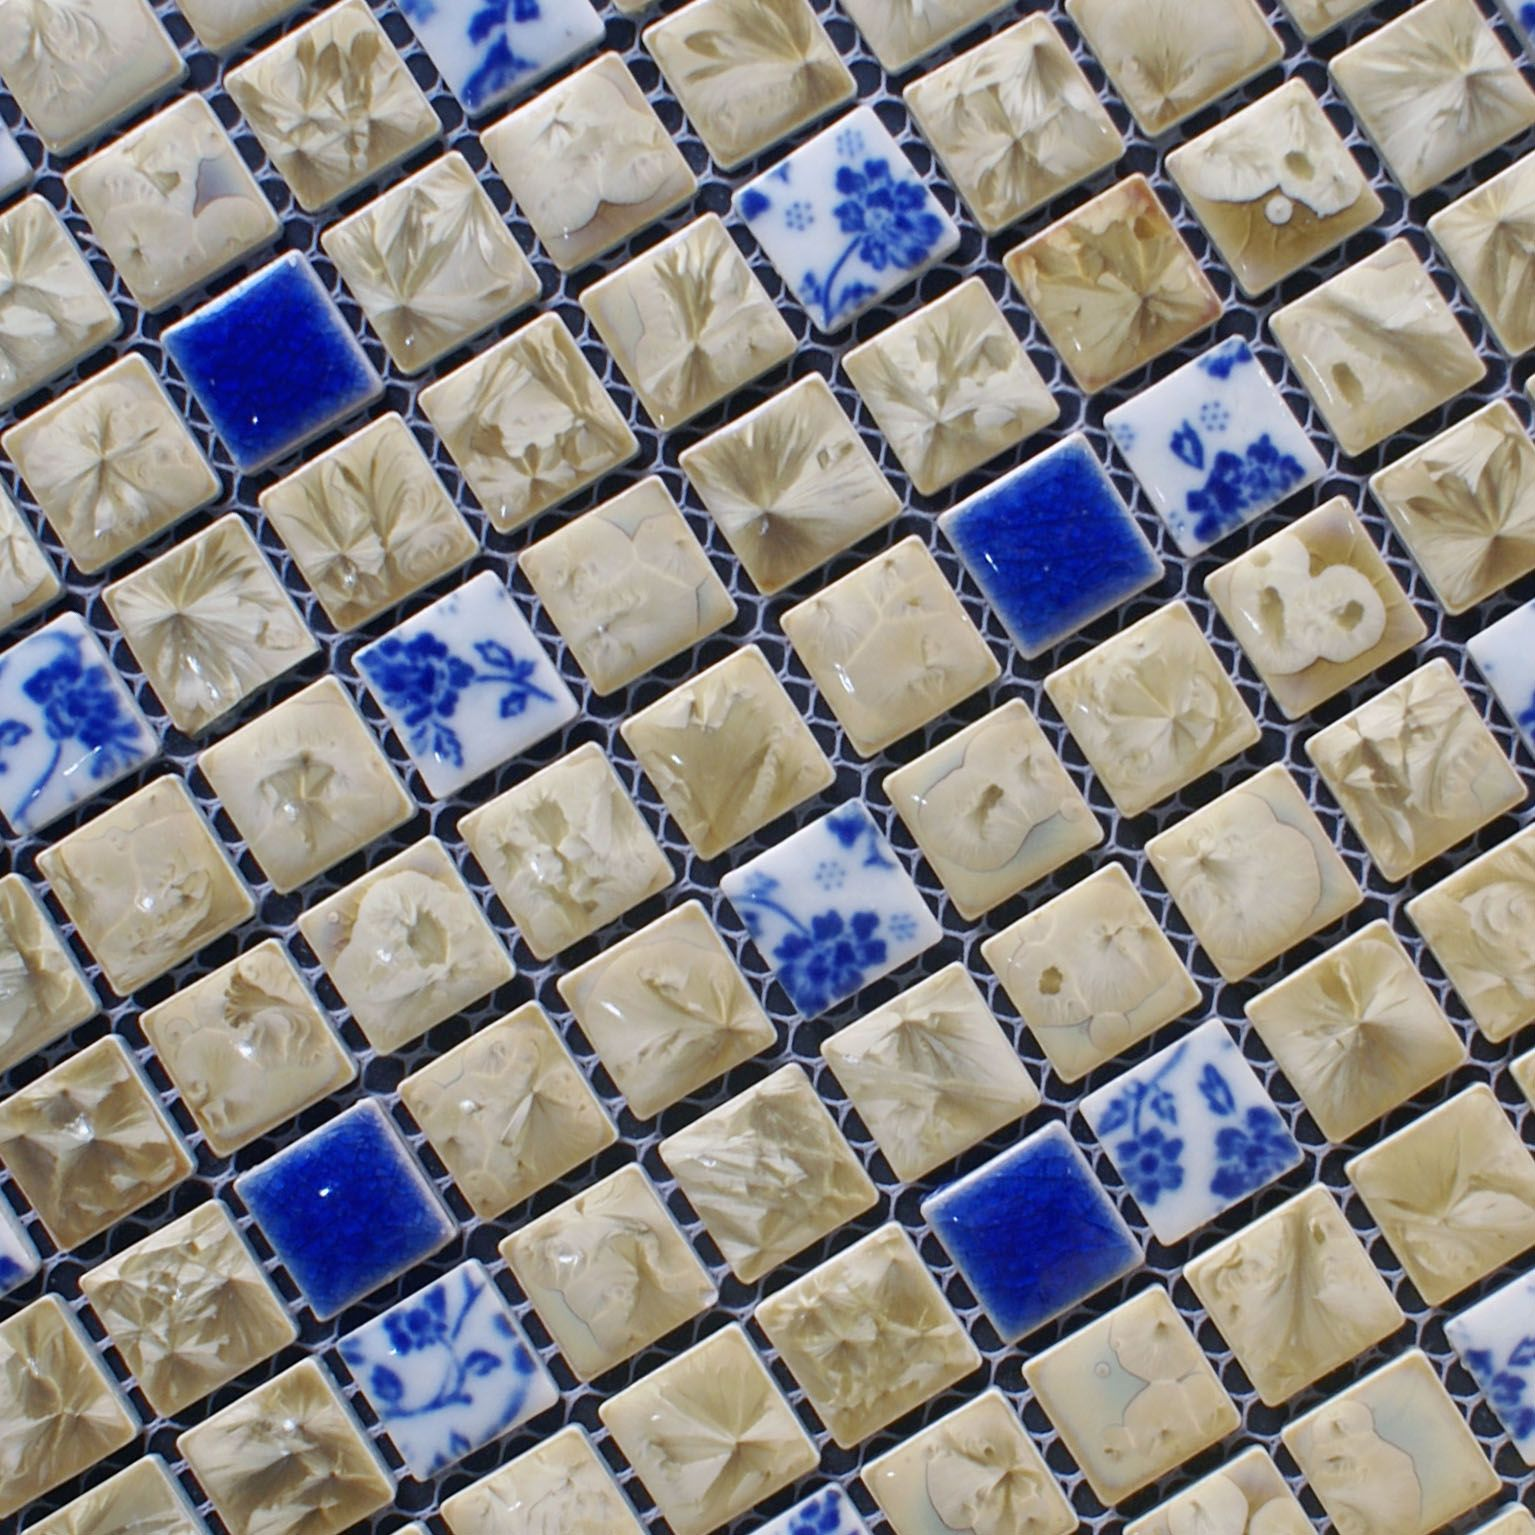 Blue ceramic mosaic tiles floor tile blue and white ceramic mosaic blue ceramic mosaic tiles floor tile blue and white ceramic mosaic dailygadgetfo Gallery